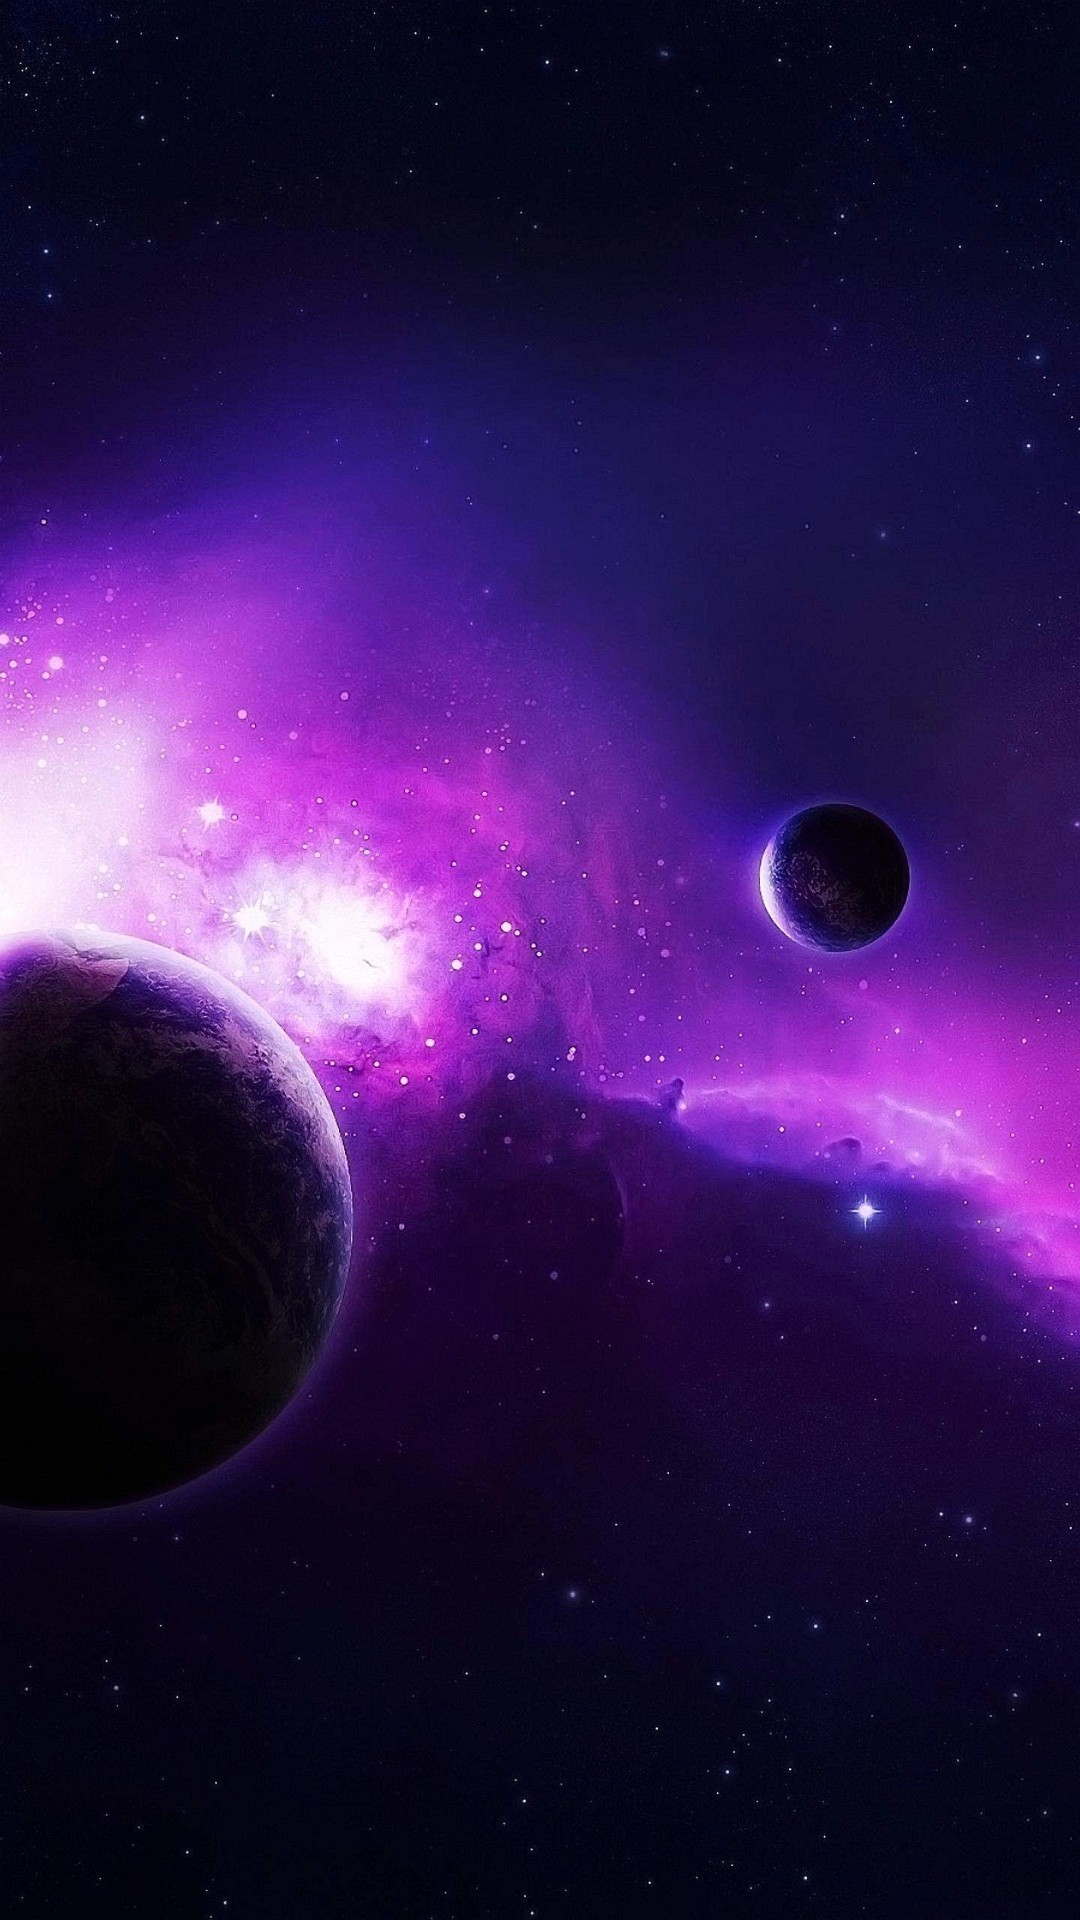 Wallpaper Iphone 6 Plus Violet Space 5 5 Inches